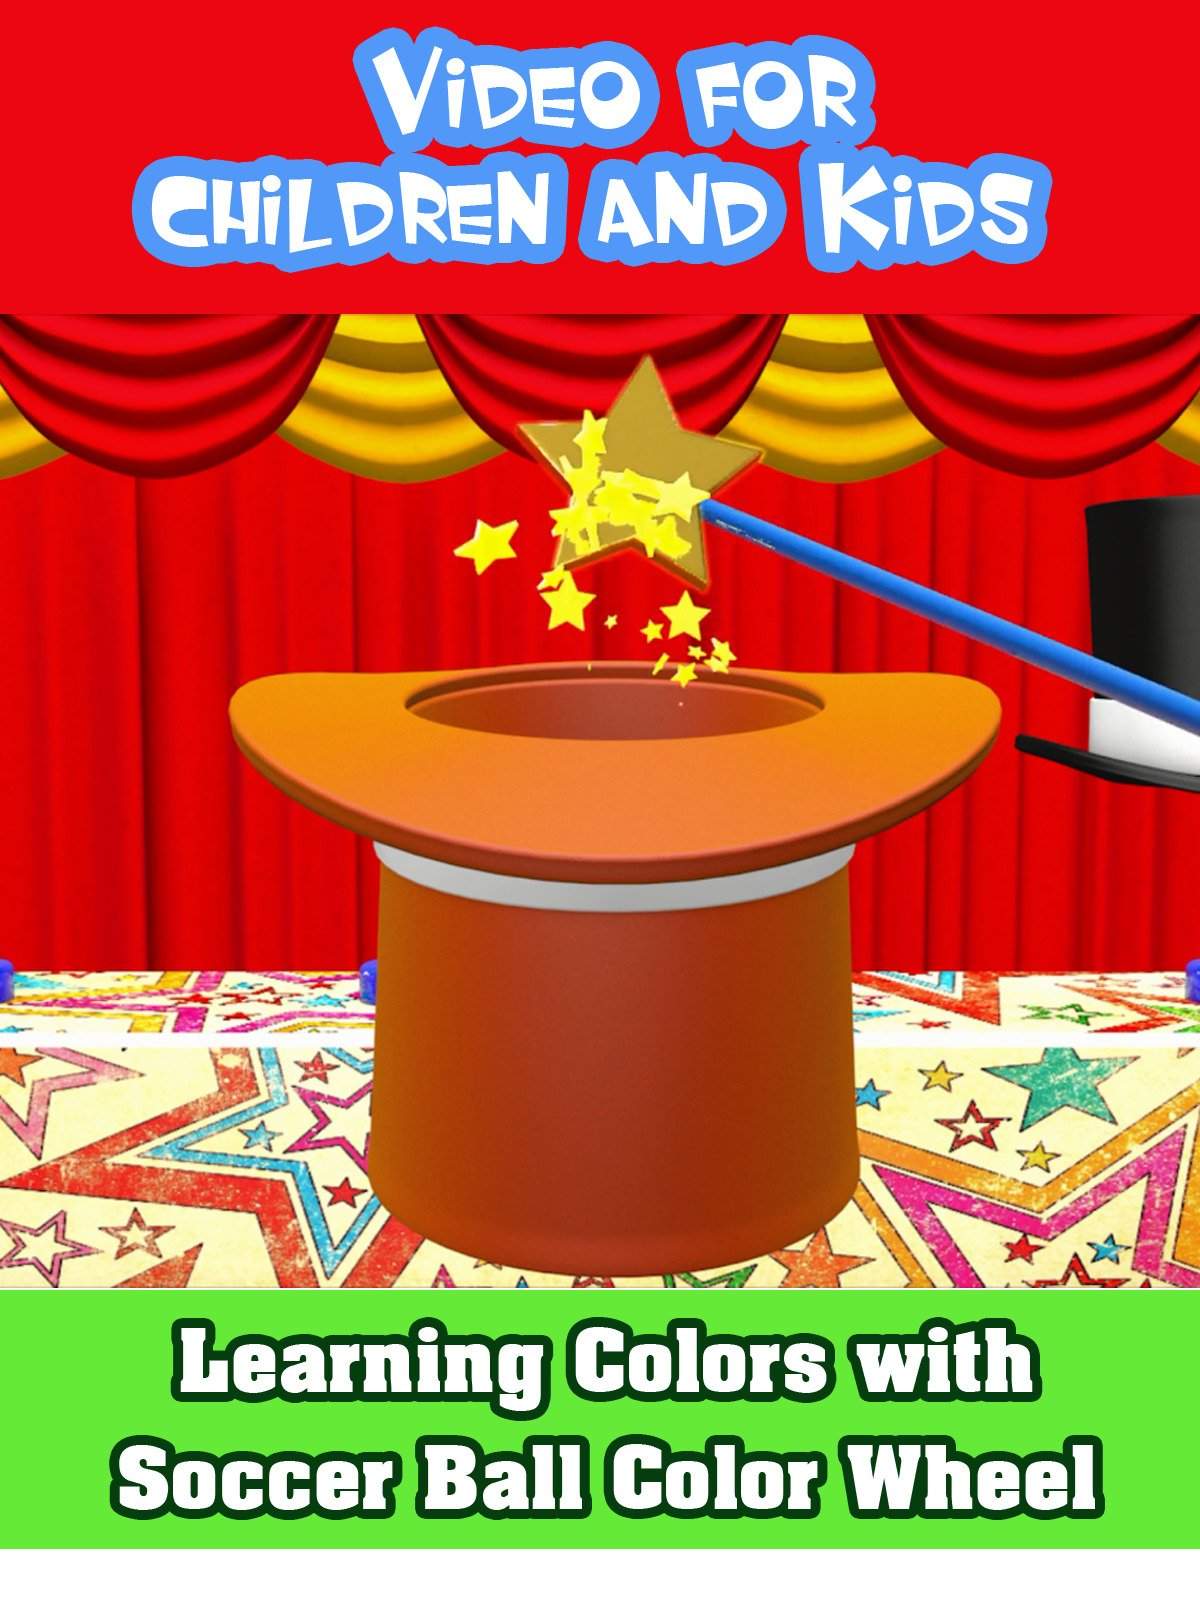 Video for Children and Kids